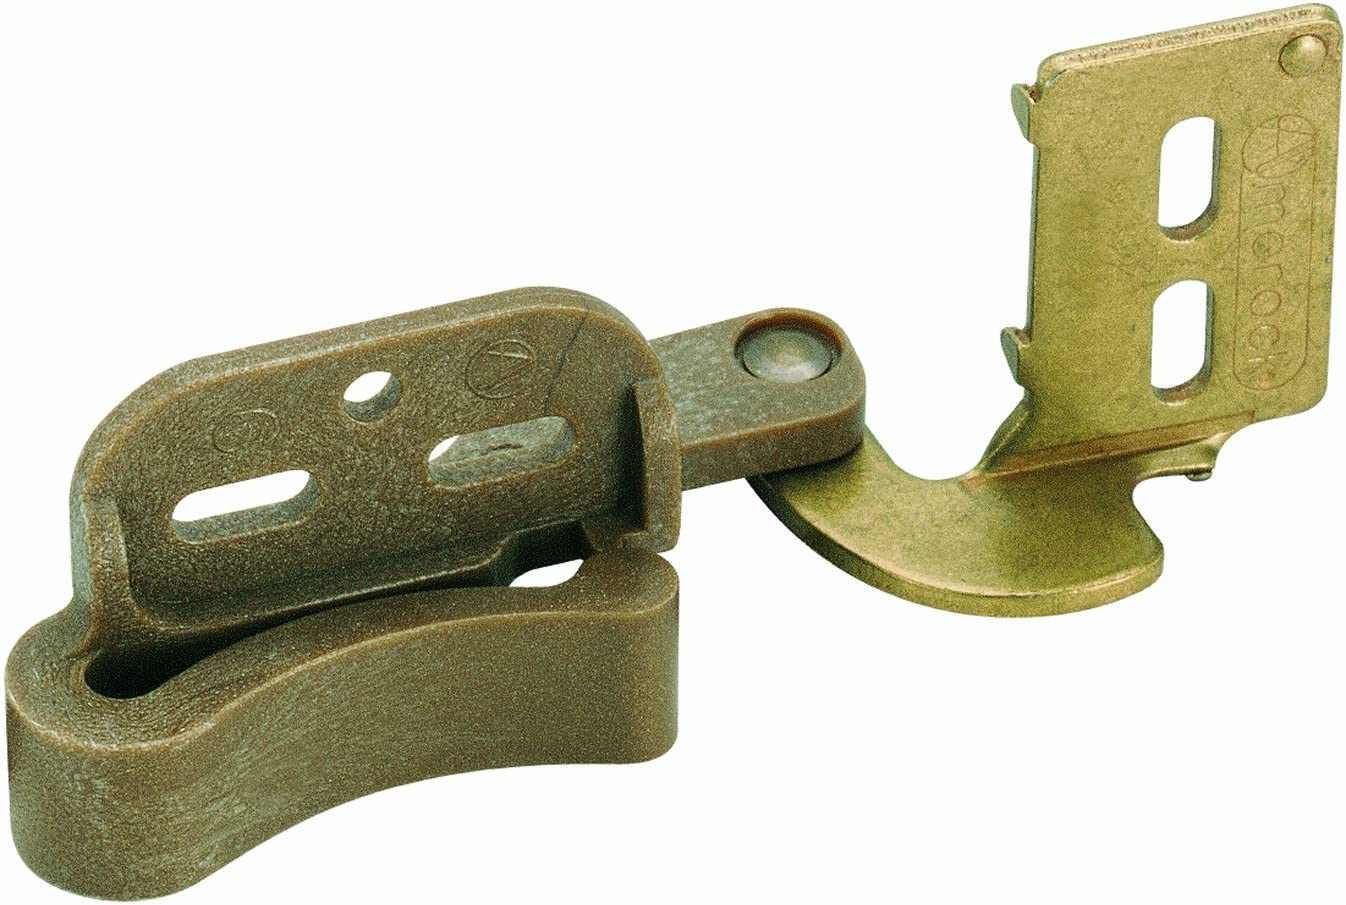 Max 80% OFF Amerock excellence BP2606BB Marathon Knife Hinge Self Closing Overlay with